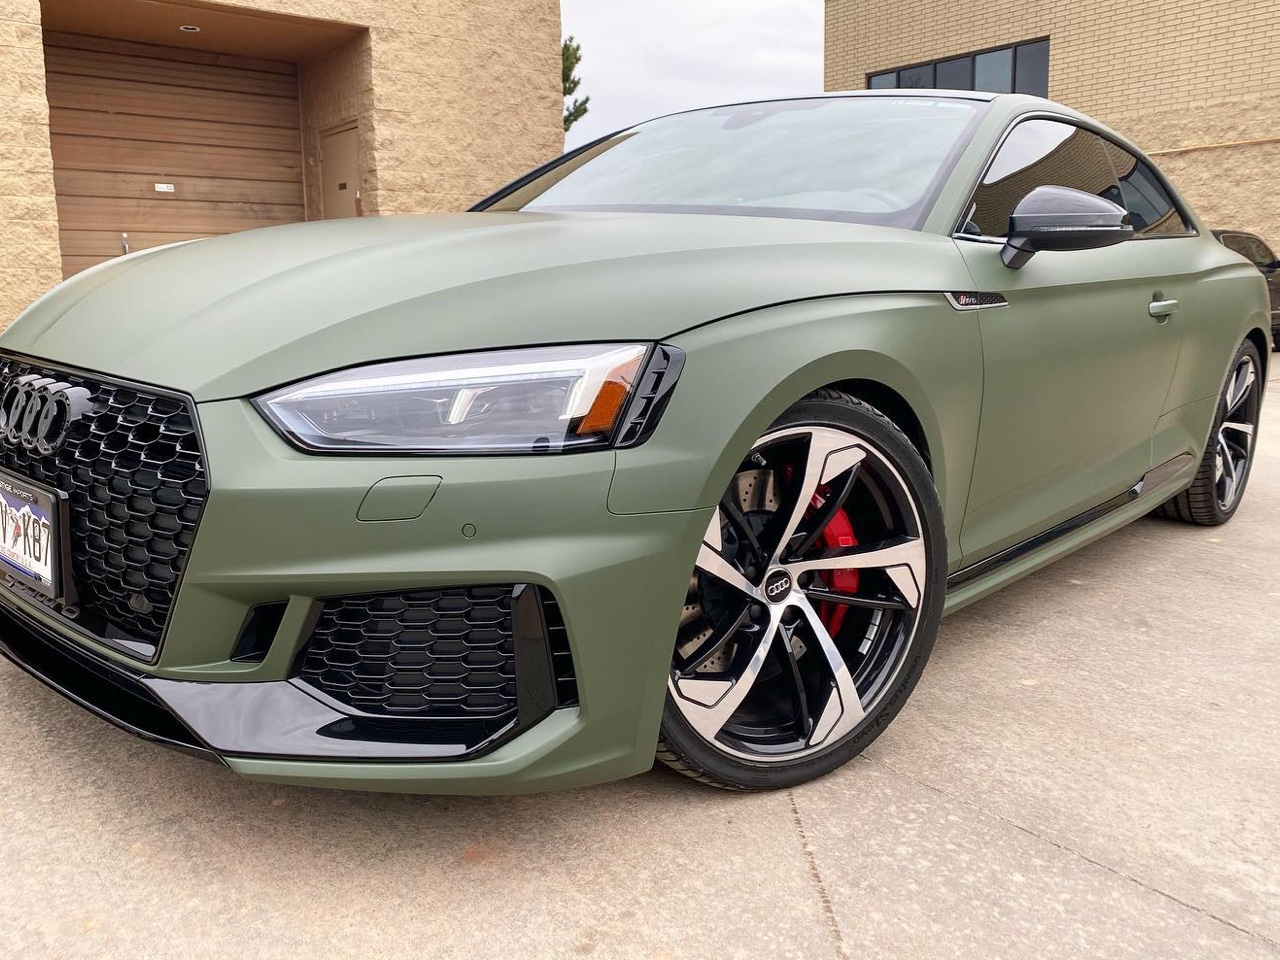 Audi RS5 tinted windows side view